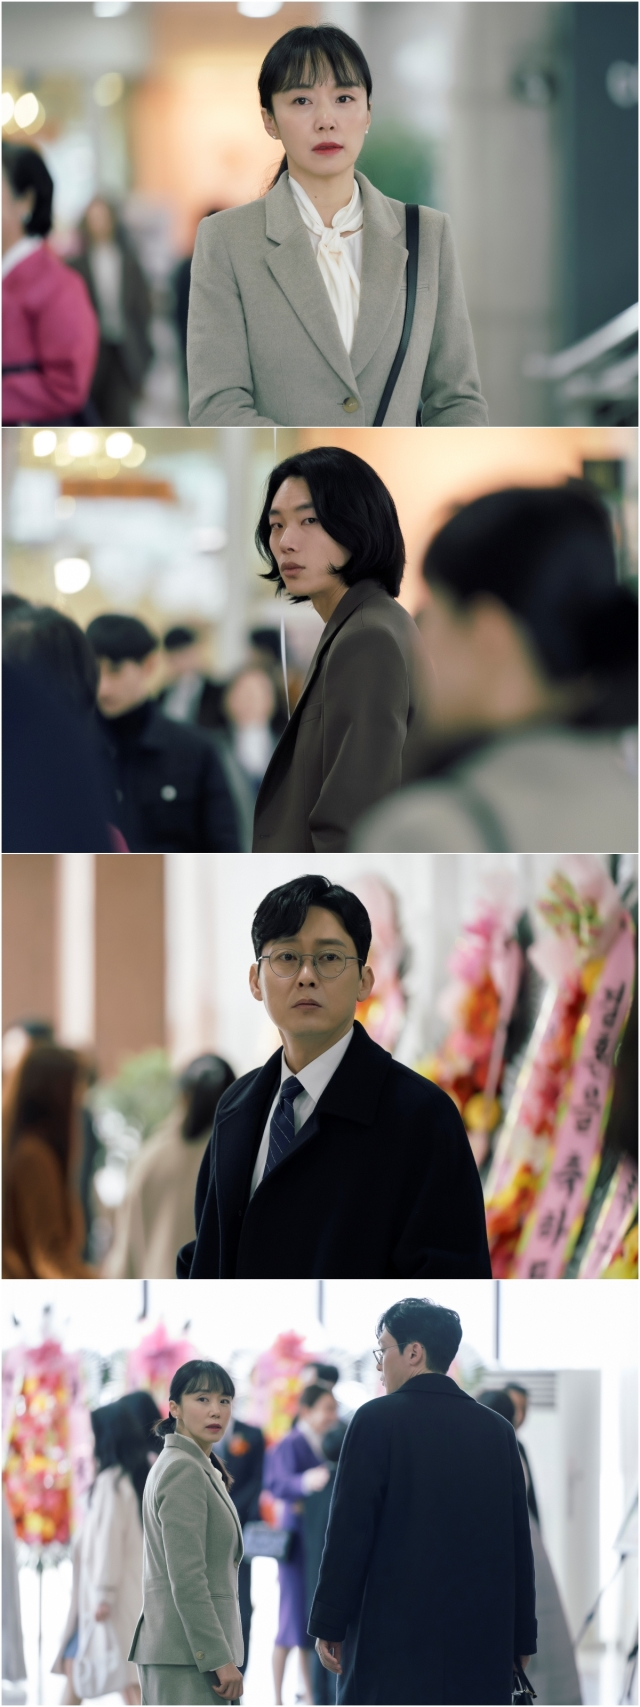 'Disqualification' Jeon Do-yeon X Ryu Jun-yeol, immediate eye contact!  With Byung-eun Park in one place?